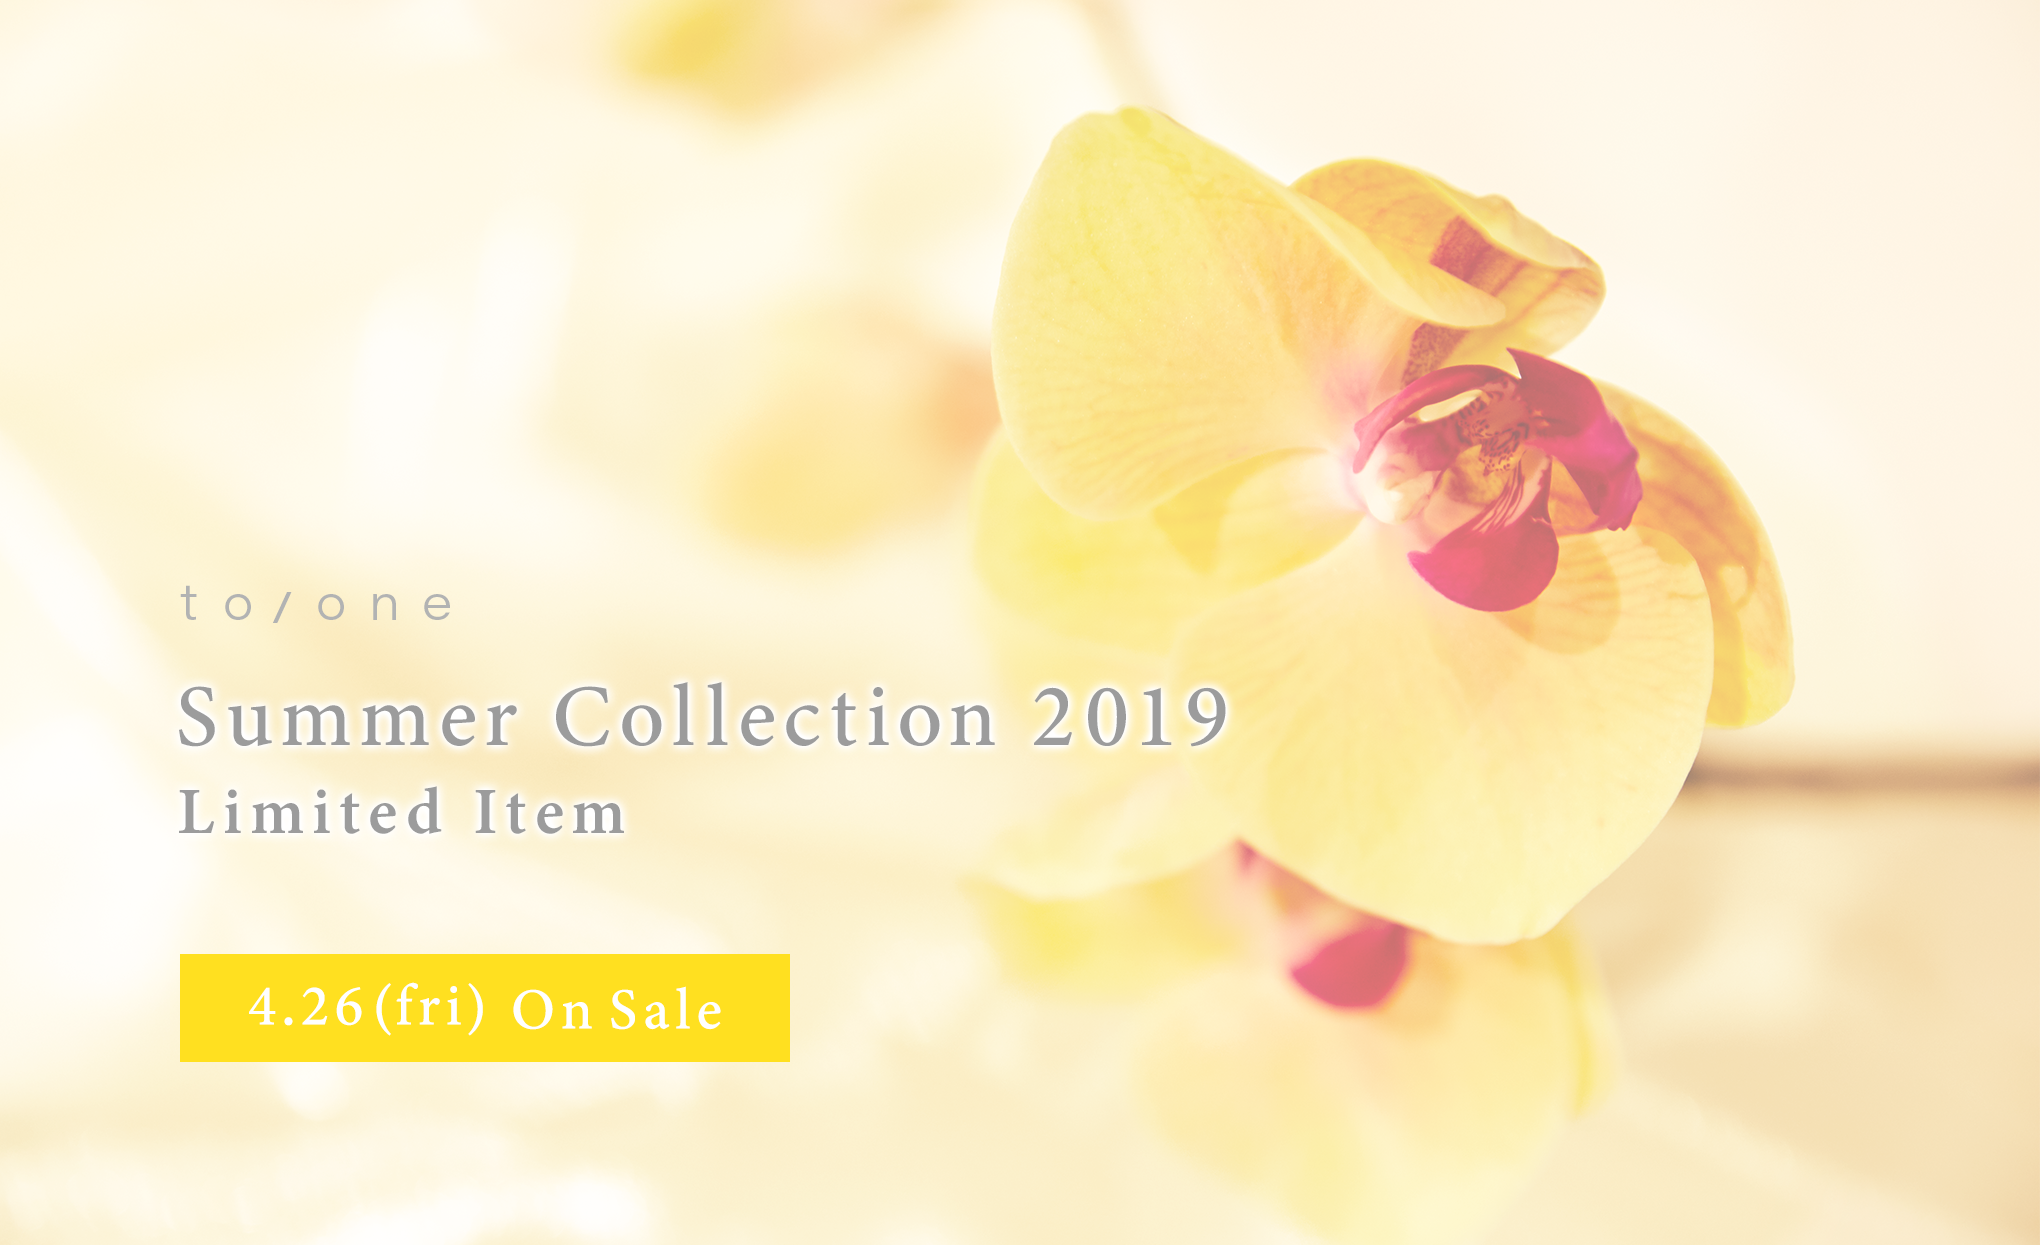 to/one Summer Collection 2019 Limited item 4.26(fri) On Sale